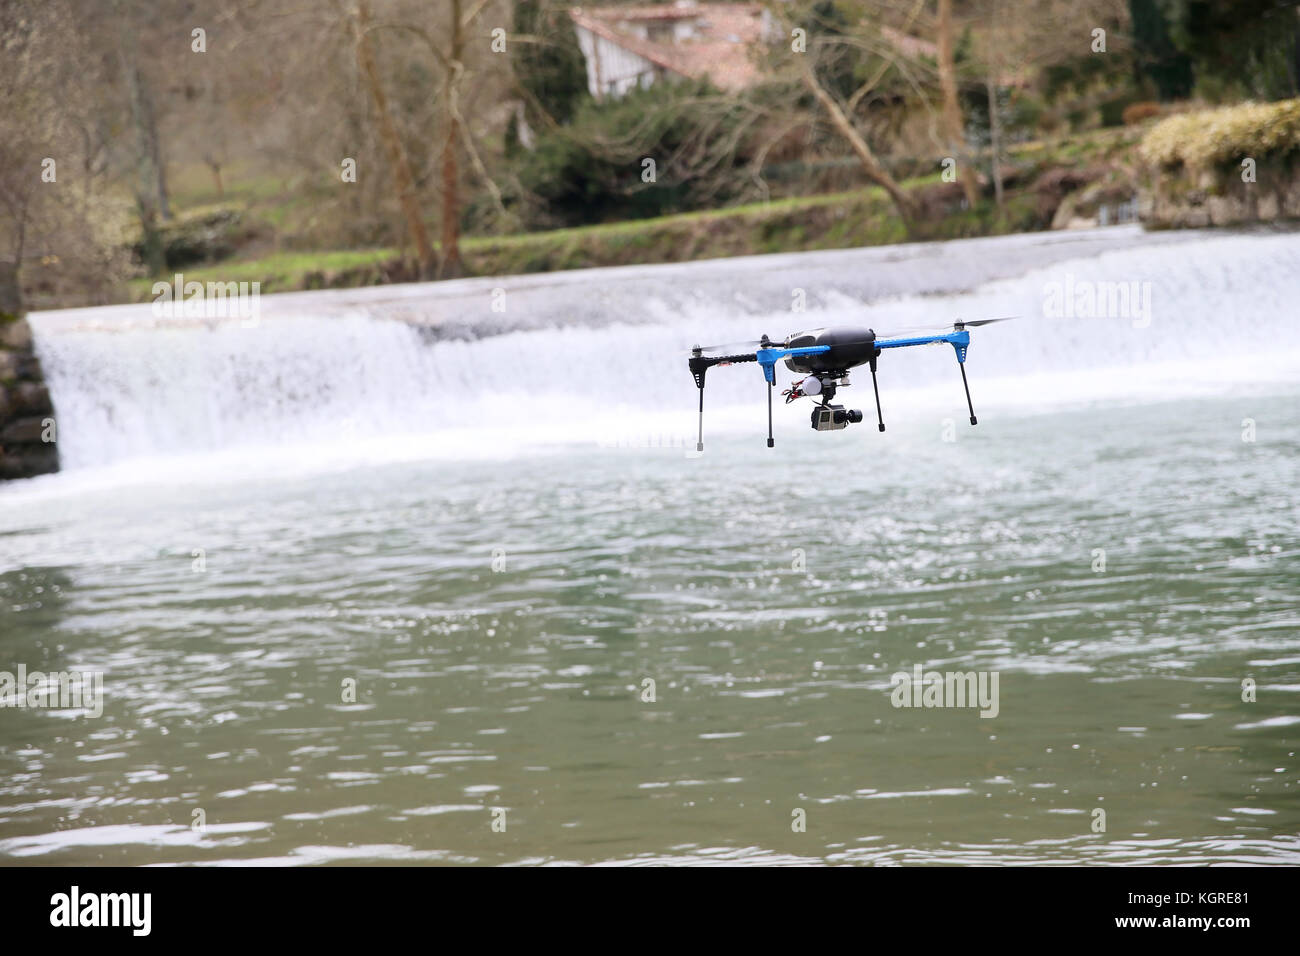 View of drone flying over river - Stock Image